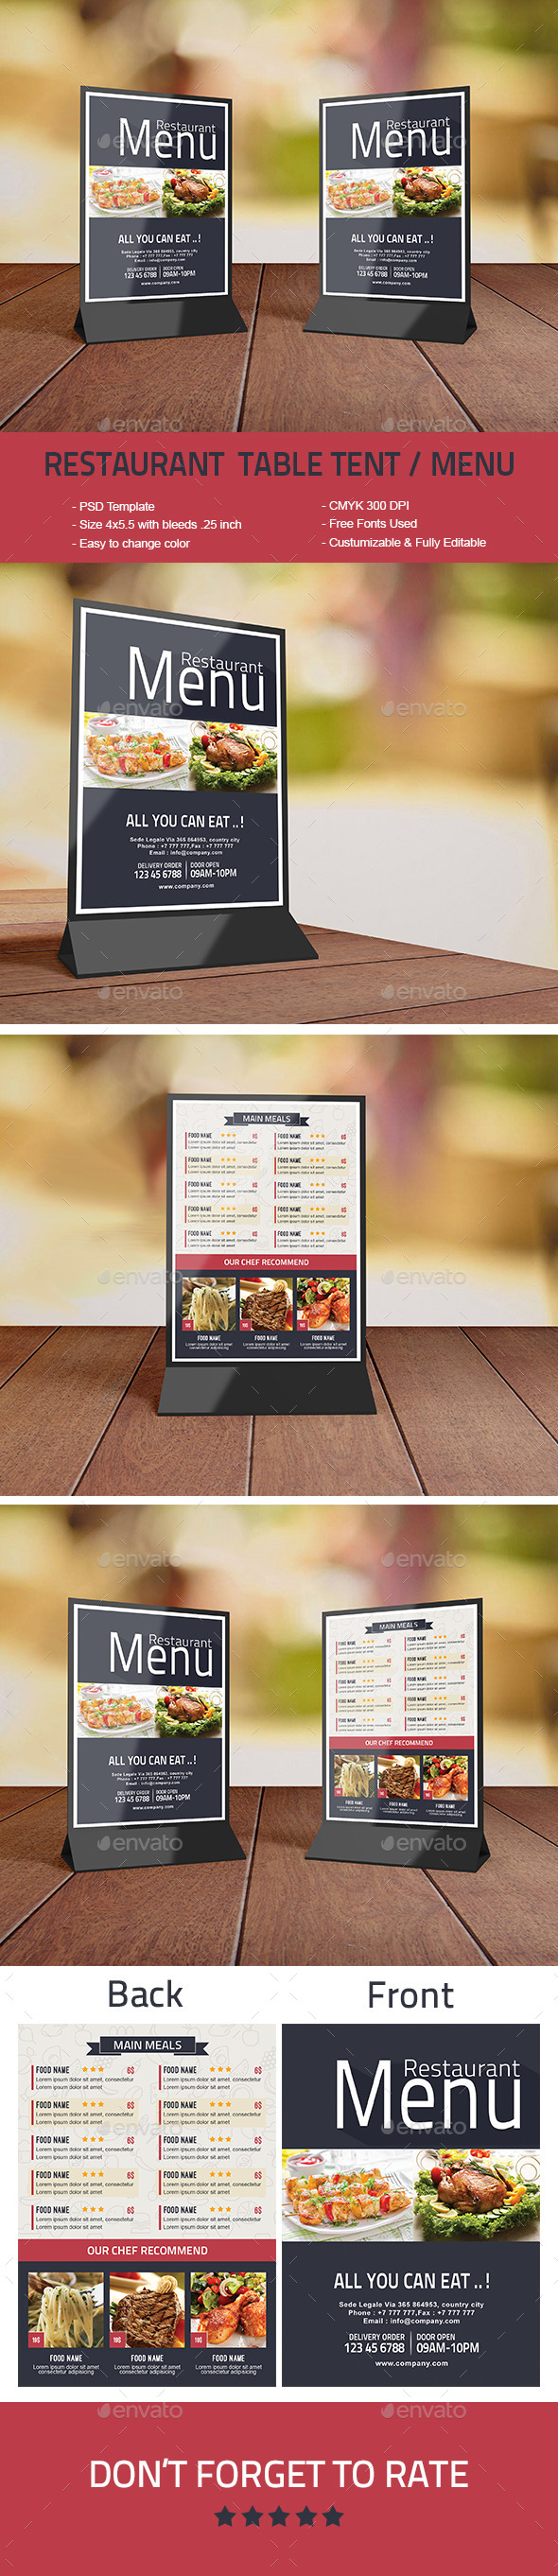 Restaurant Table Tent / Menu - Food Menus Print Templates